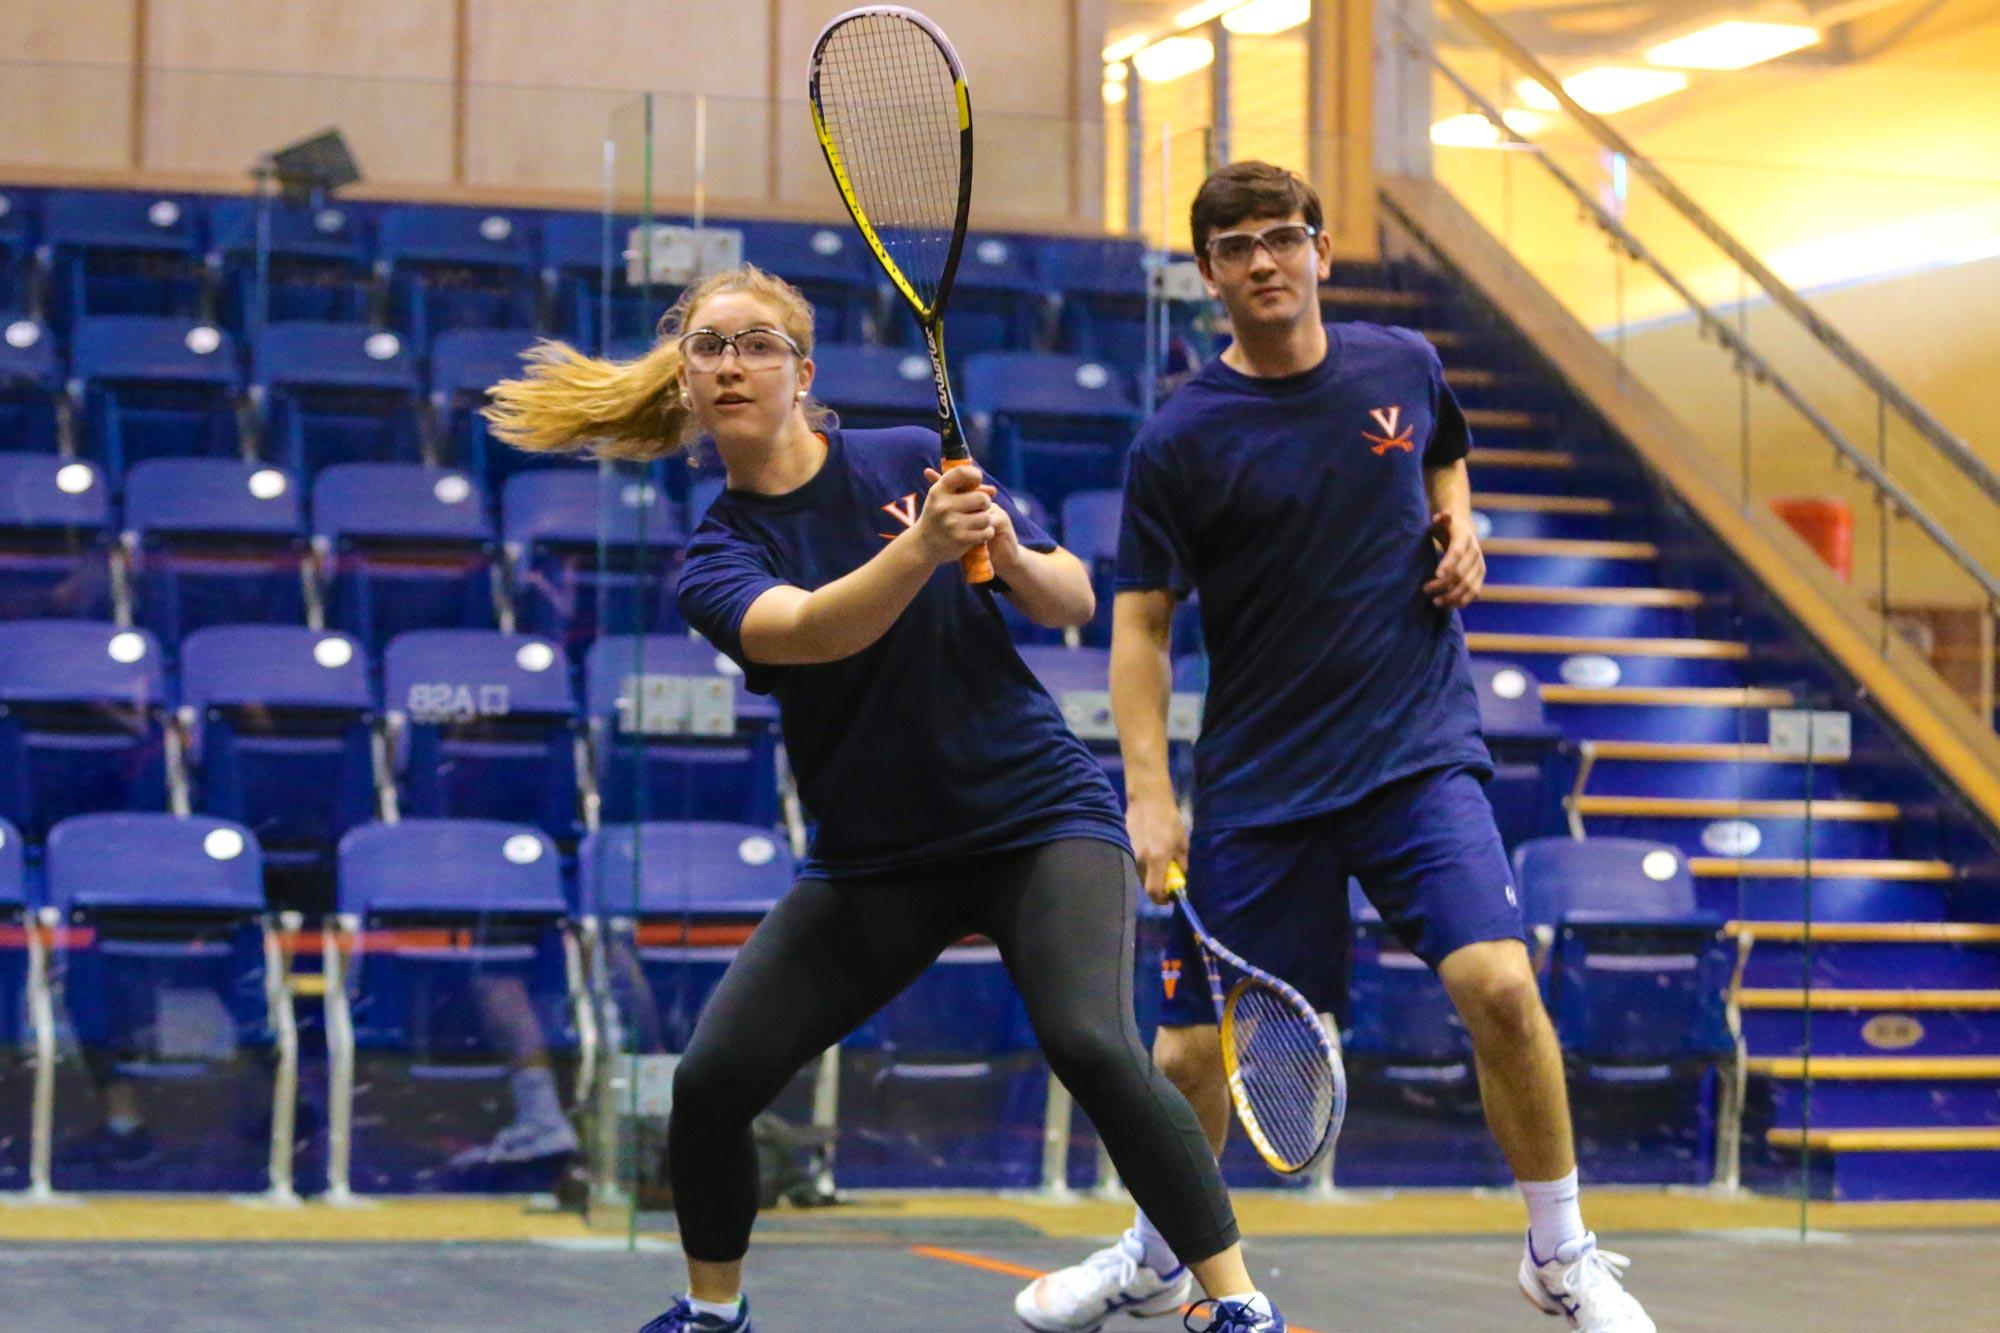 UVA squash players Julia Thompson and Harrison Kapp in action at the McArthur Squash Center. (Photos by Jim Daves, UVA Athletics)